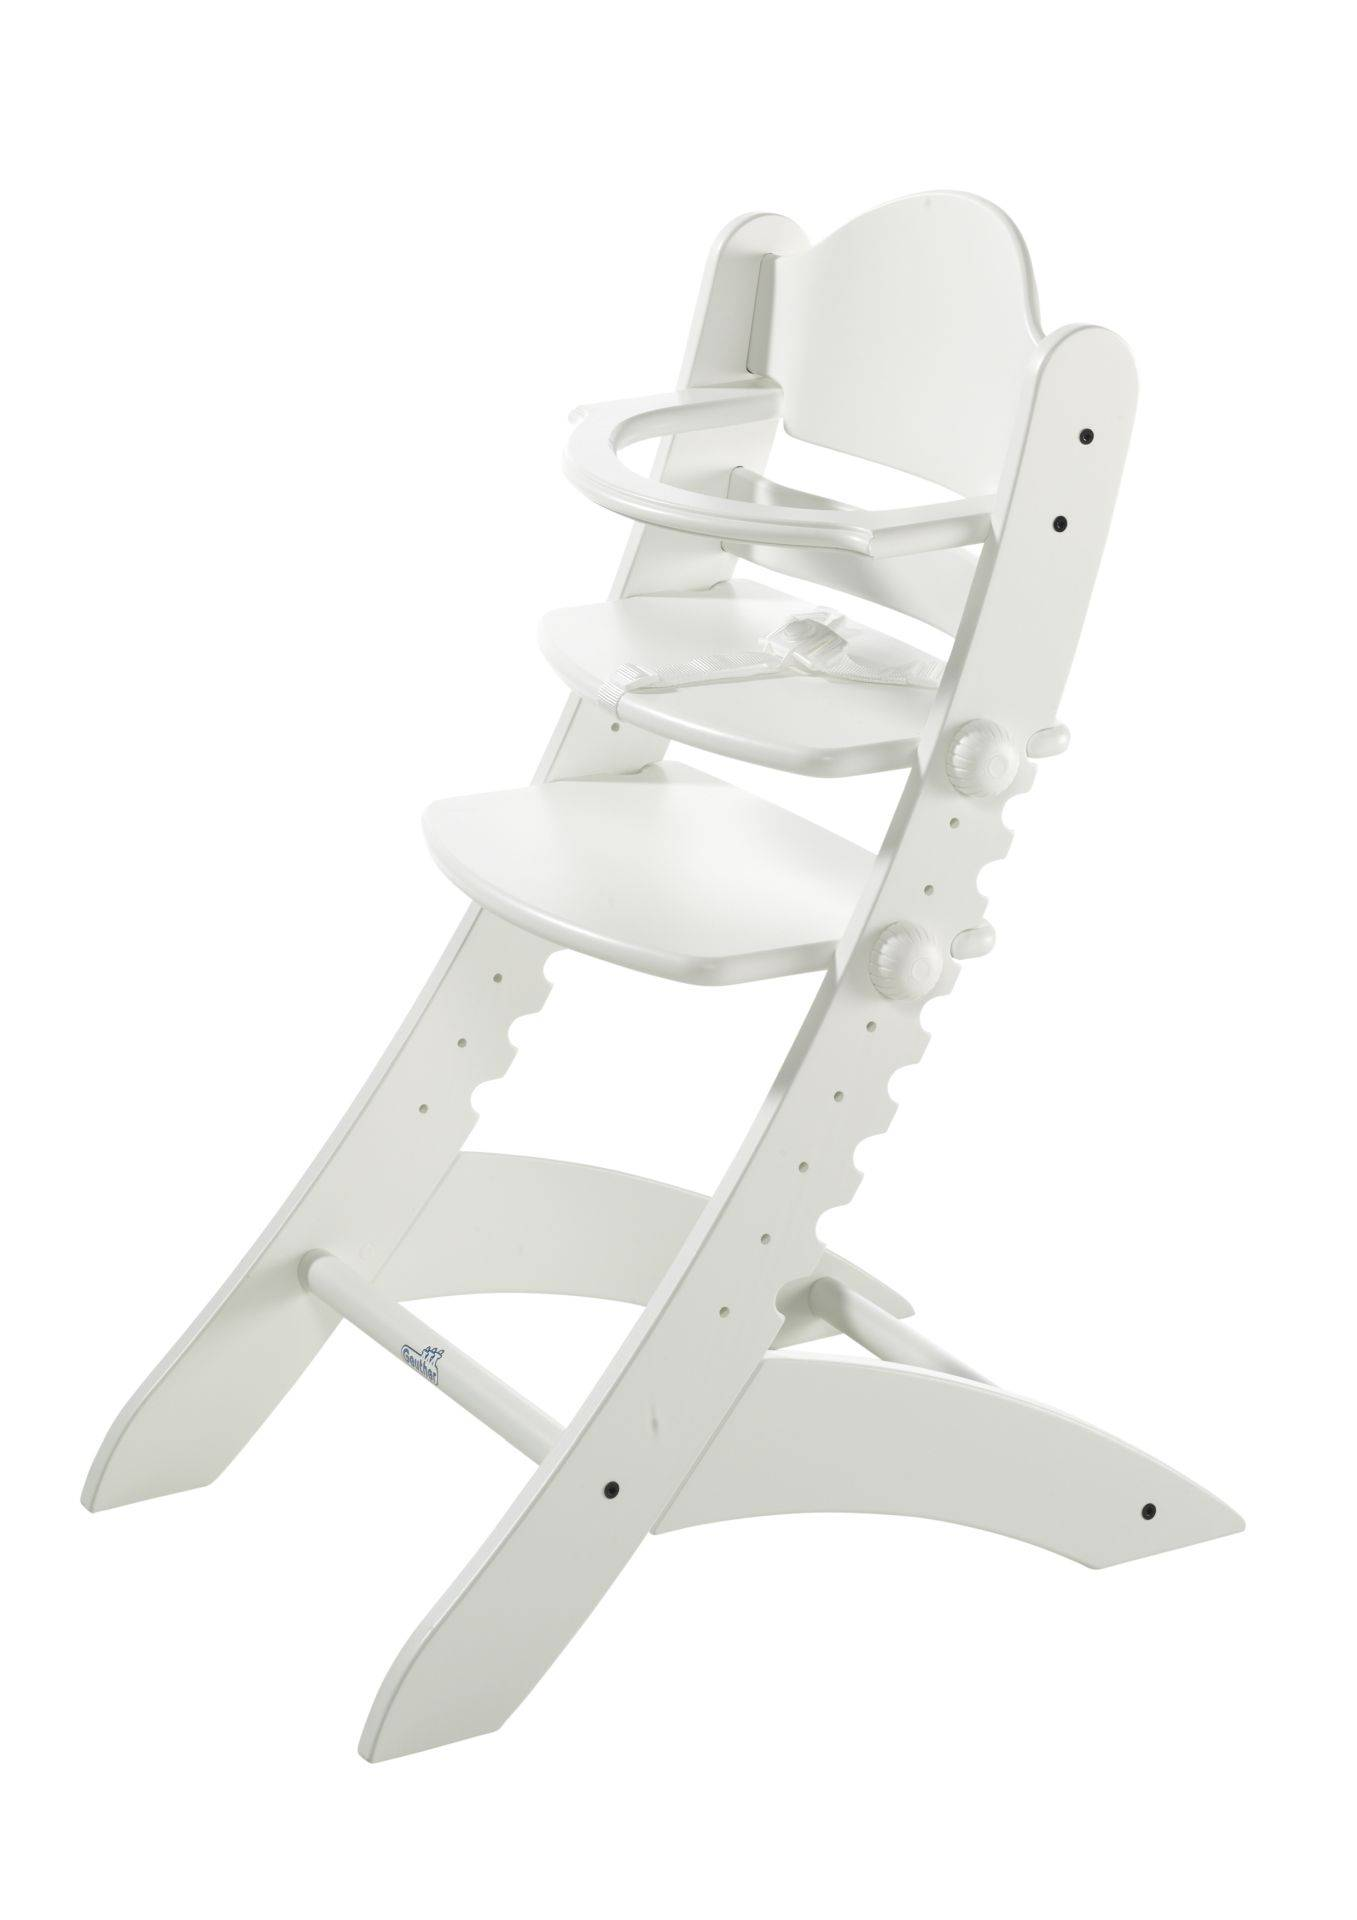 Geuther Swing highchair; Weiß